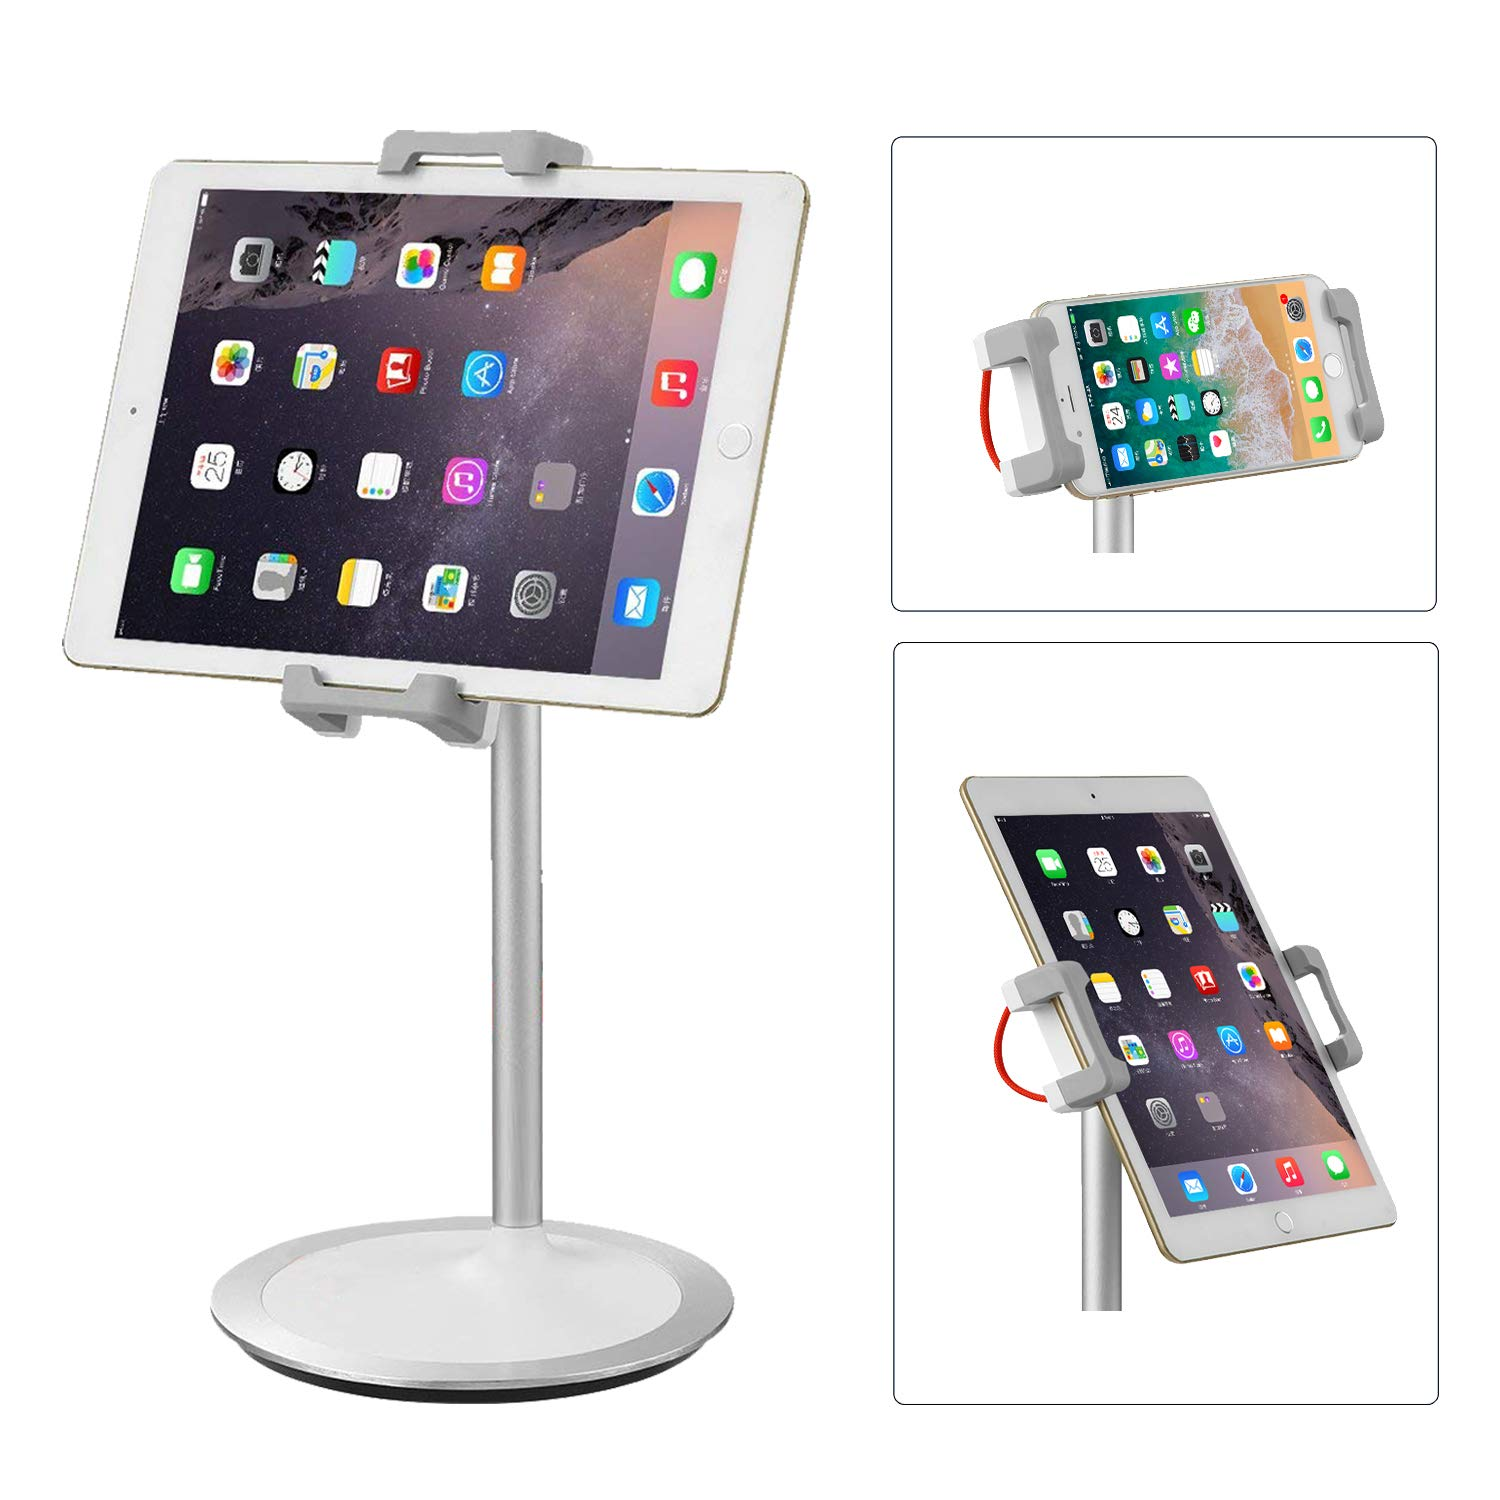 Suptek Stylish Aluminum Tablet Stand Cell Phone Stand